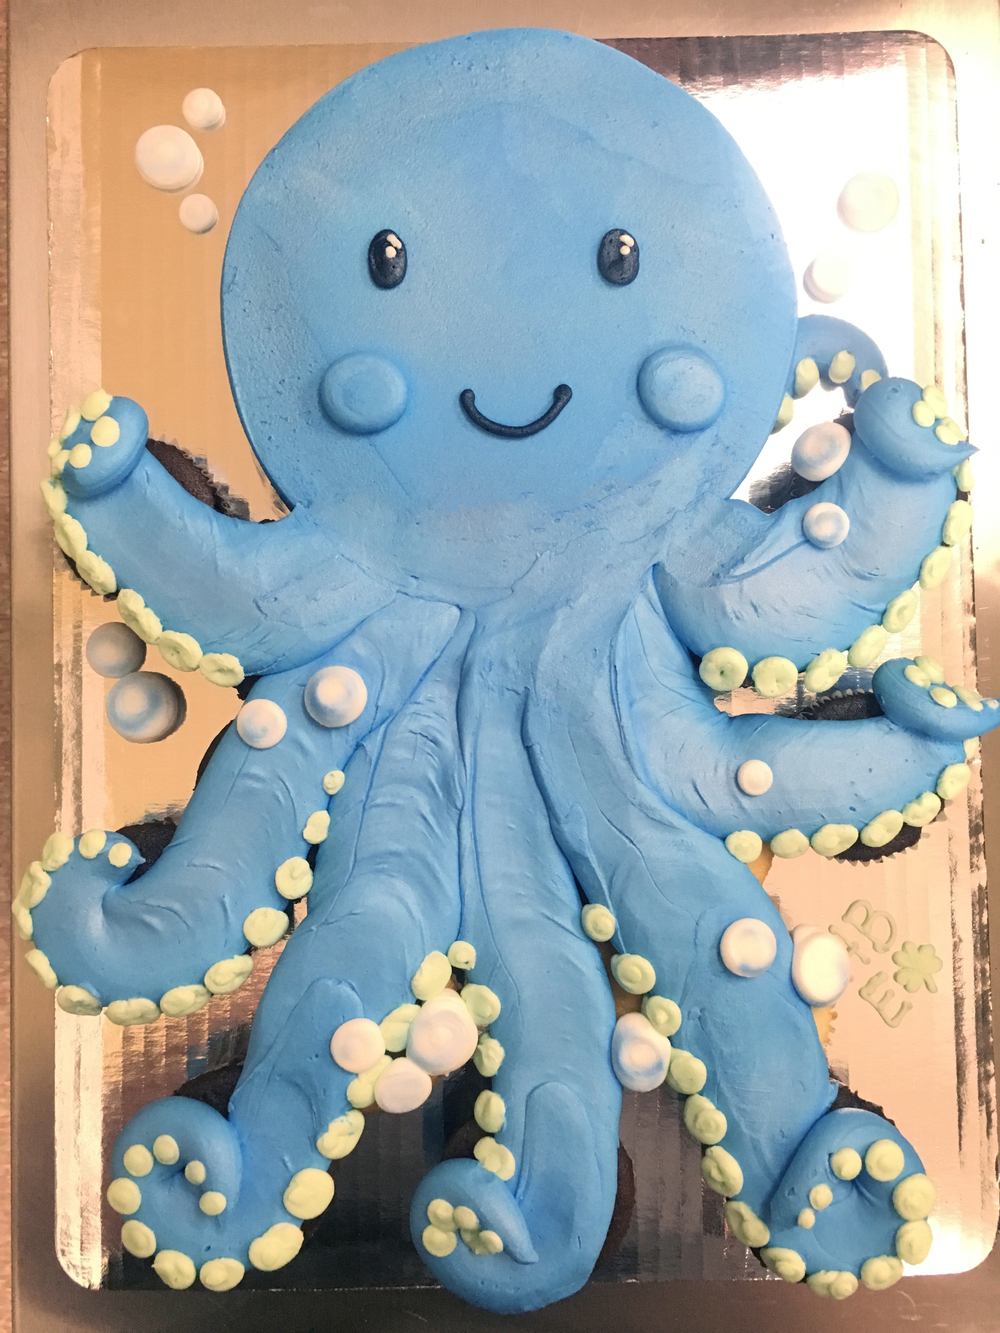 Octopus out of Cupcakes